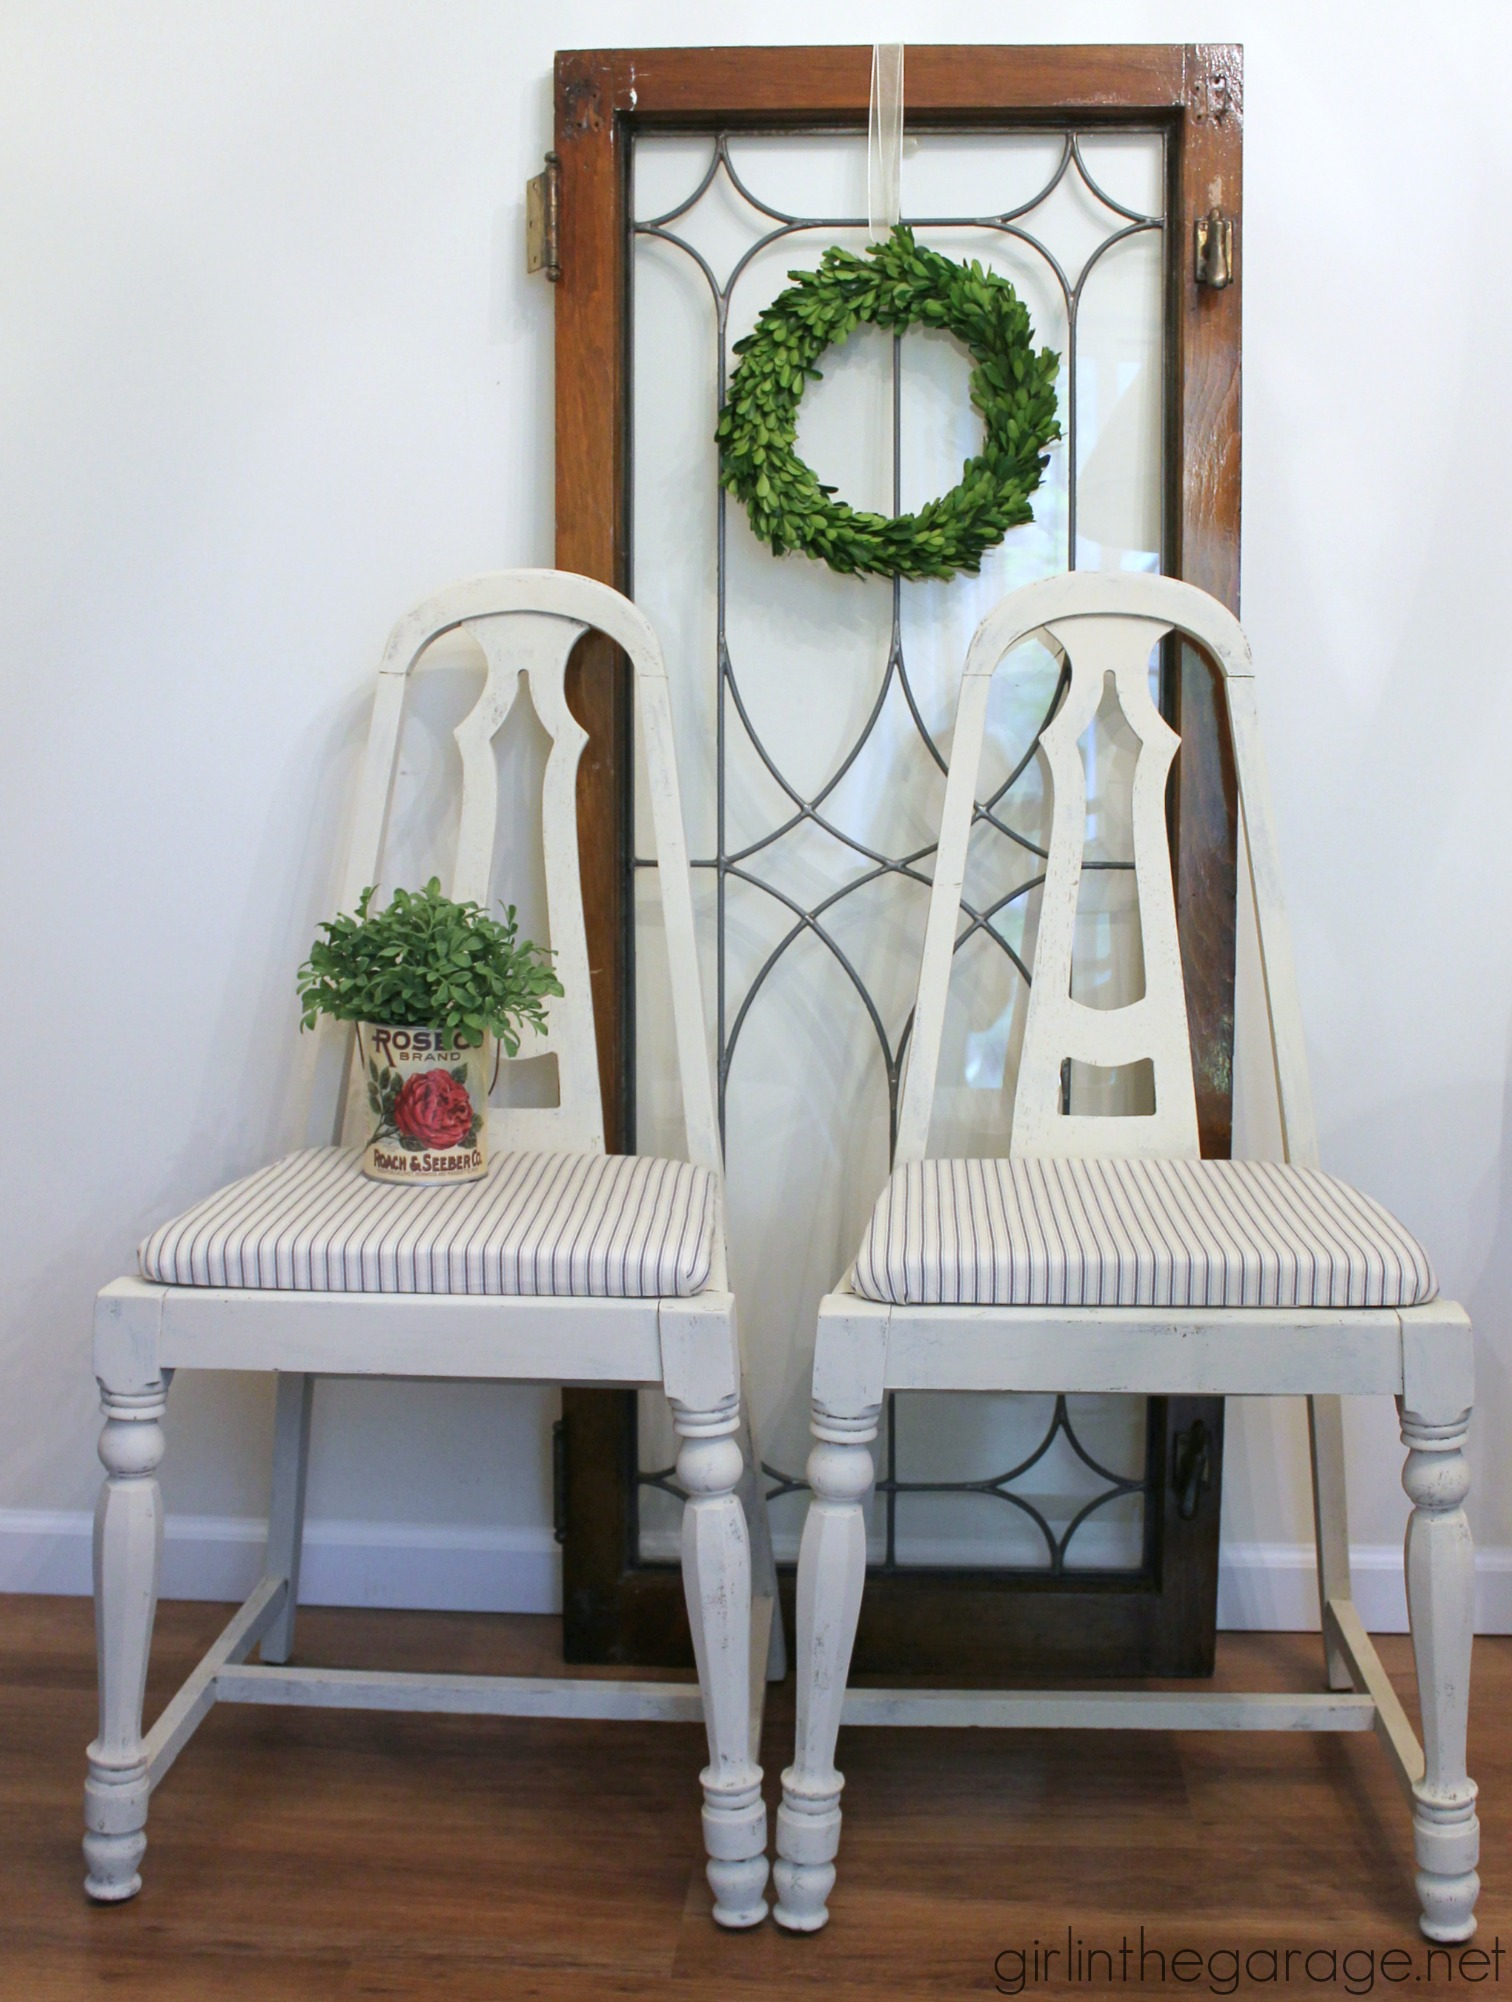 Thrifted farmhouse chairs (recovered in an old skirt!) - by Girl in the Garage